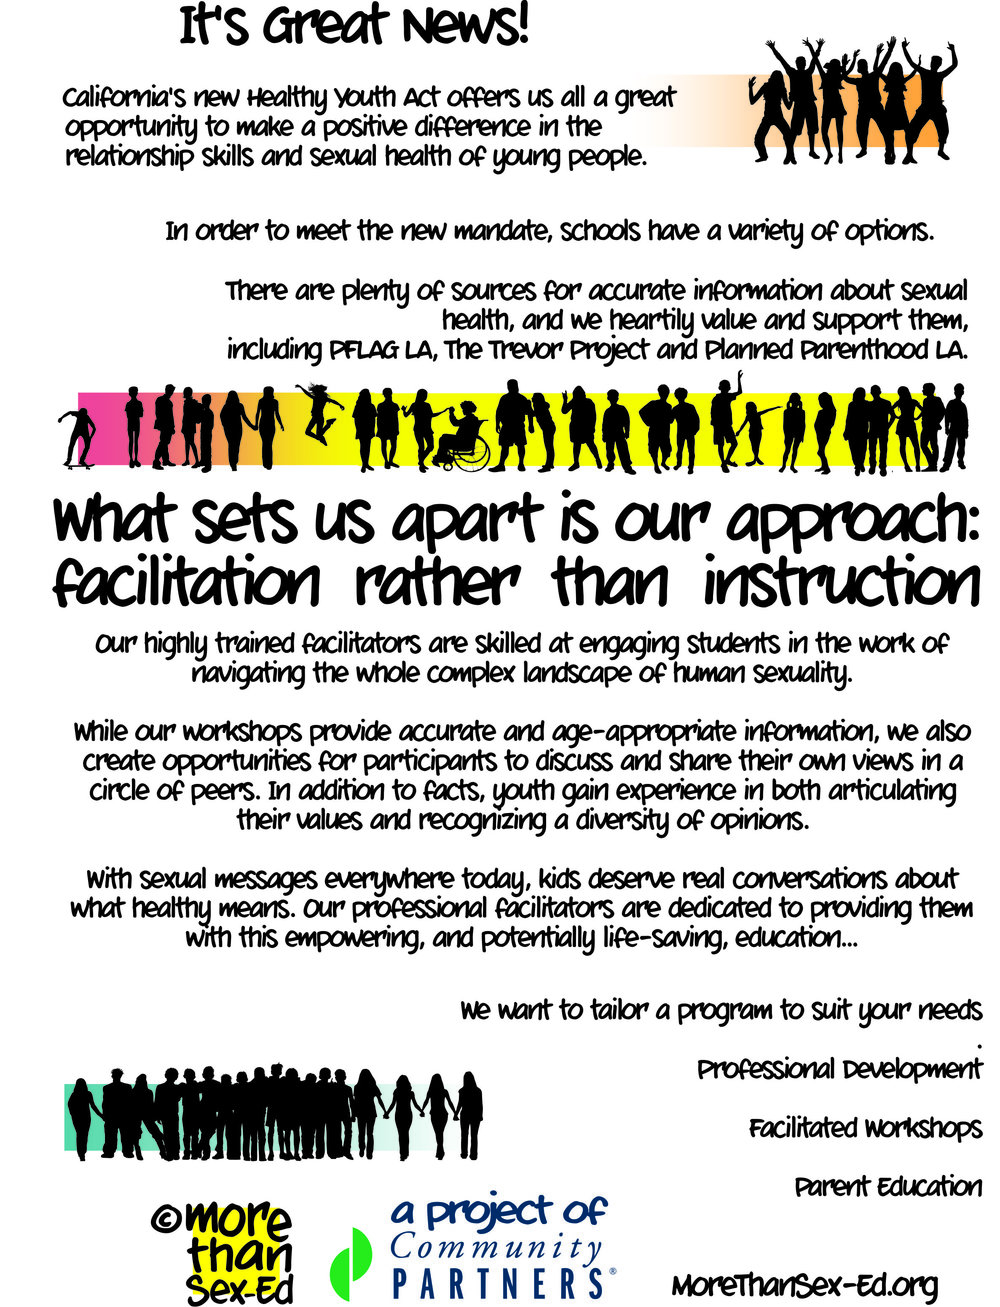 facilitation rather than instruction